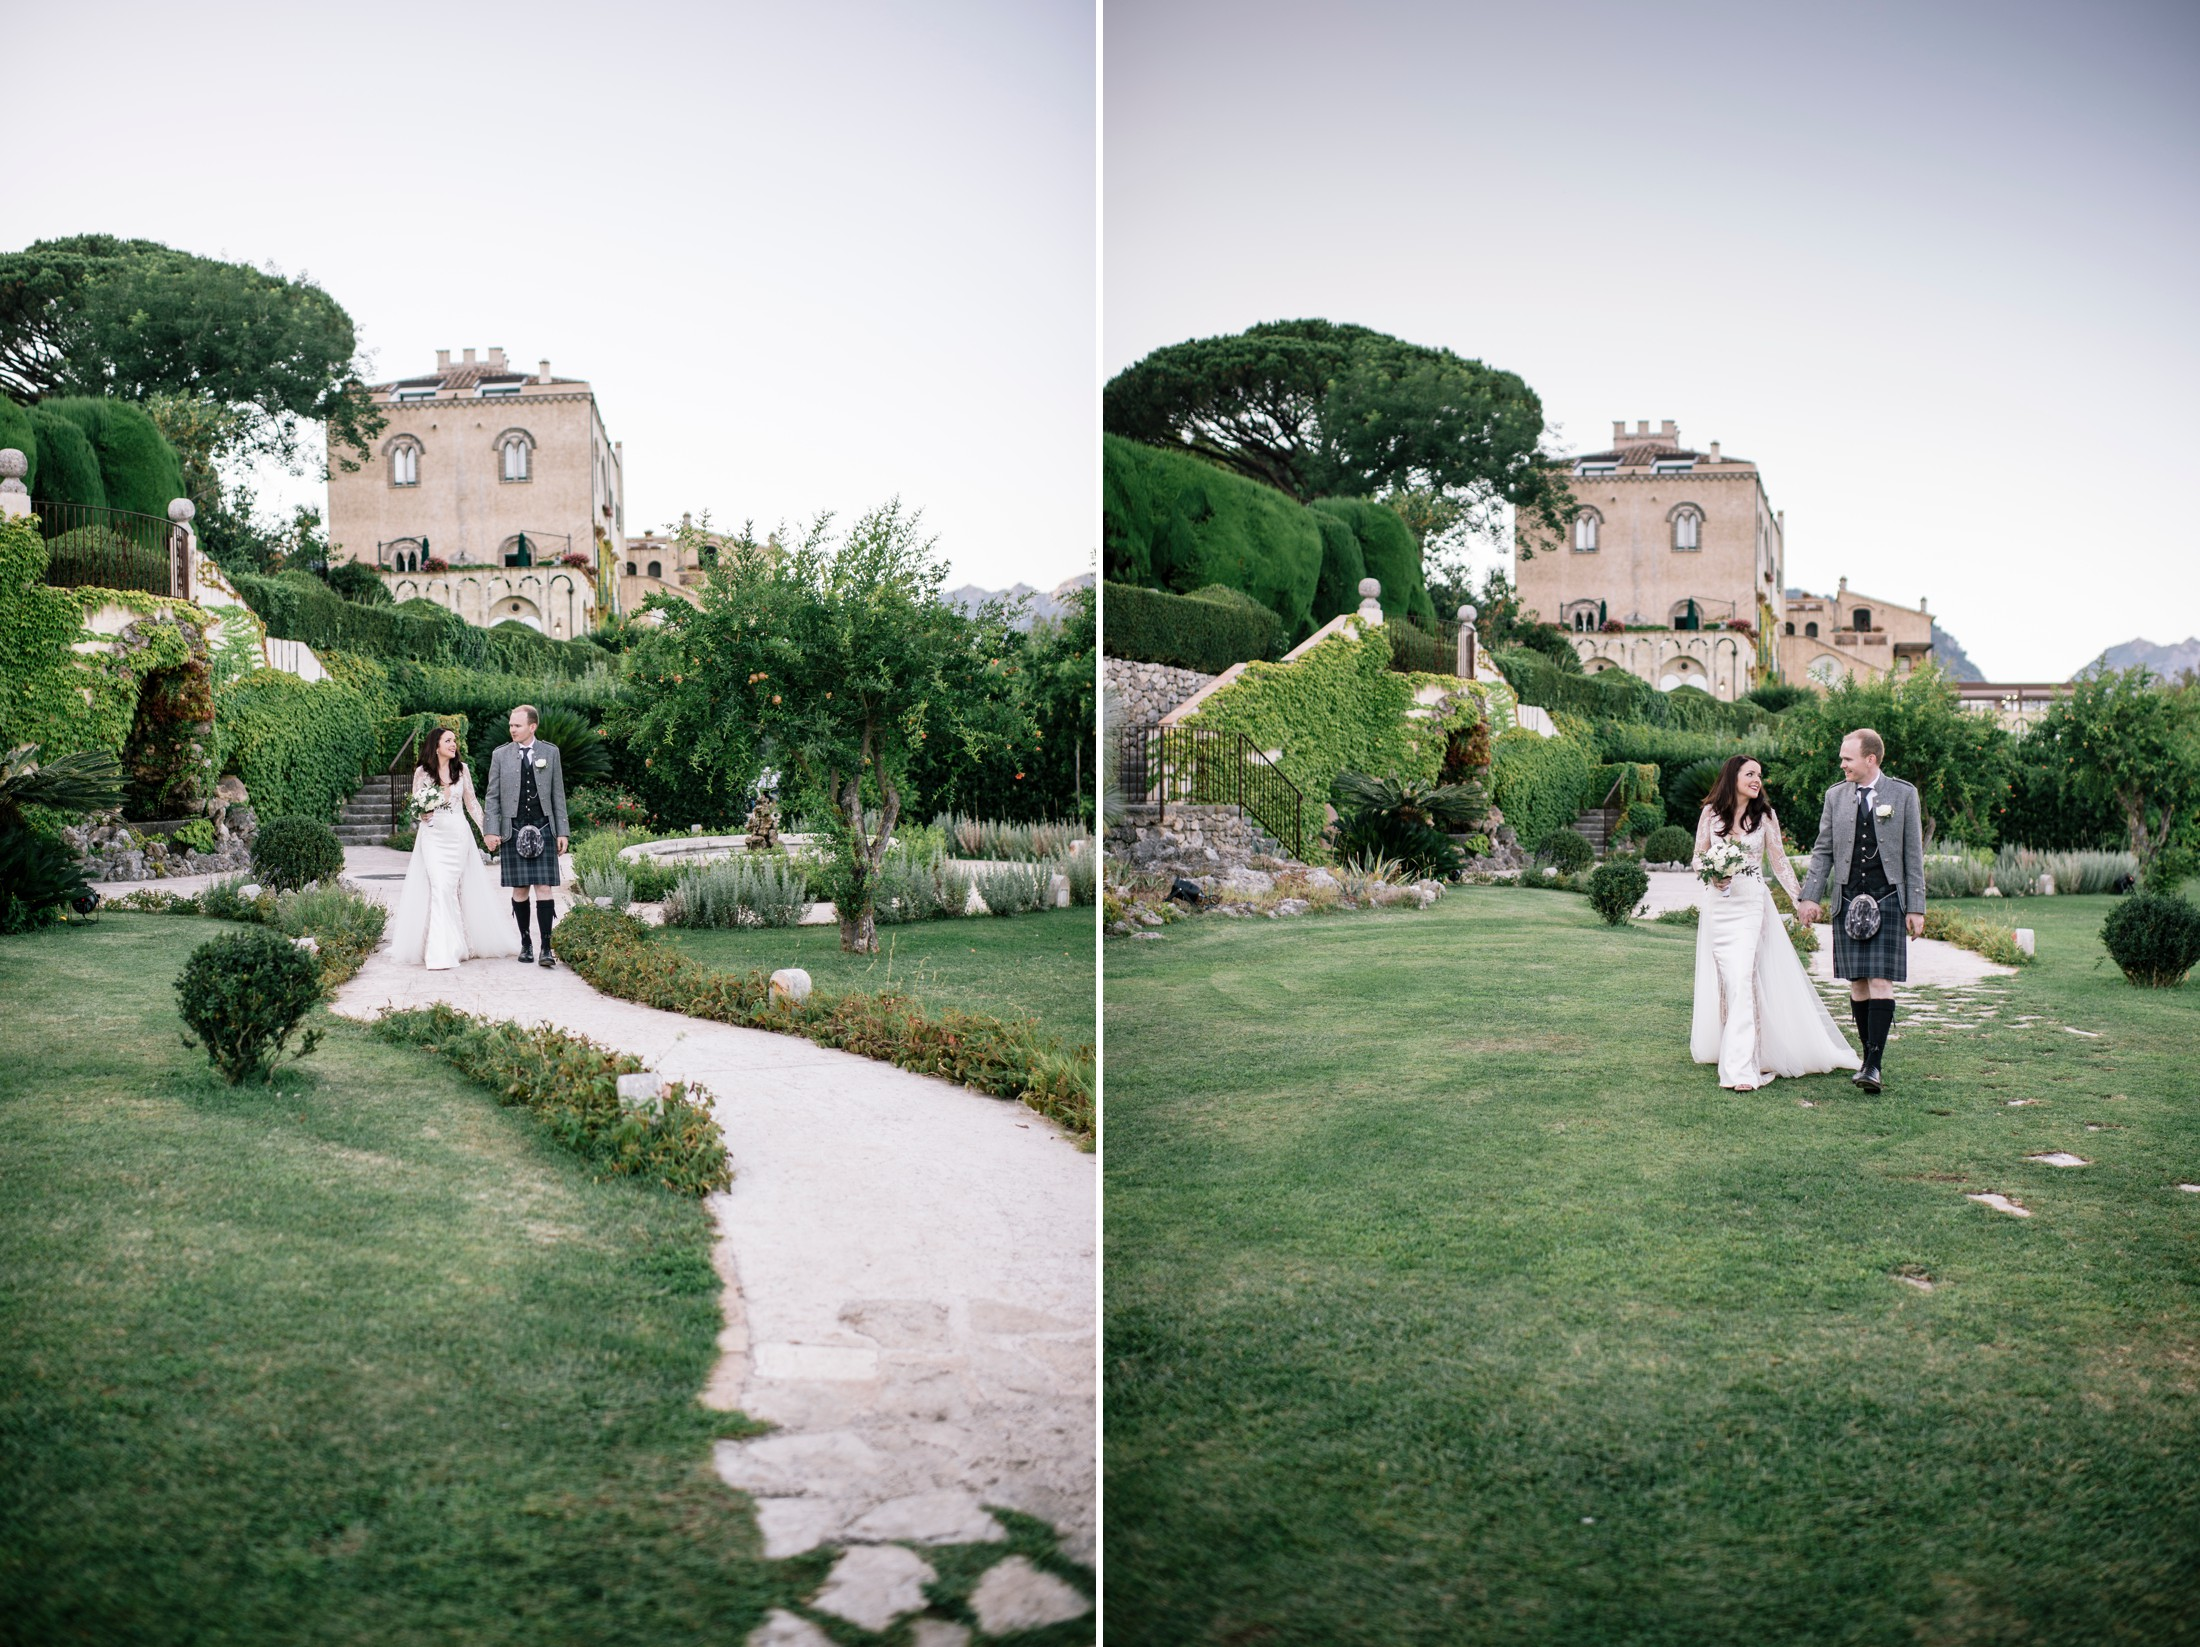 bride and groom joining their guests for the wedding dinner at villa cimbrone ravello